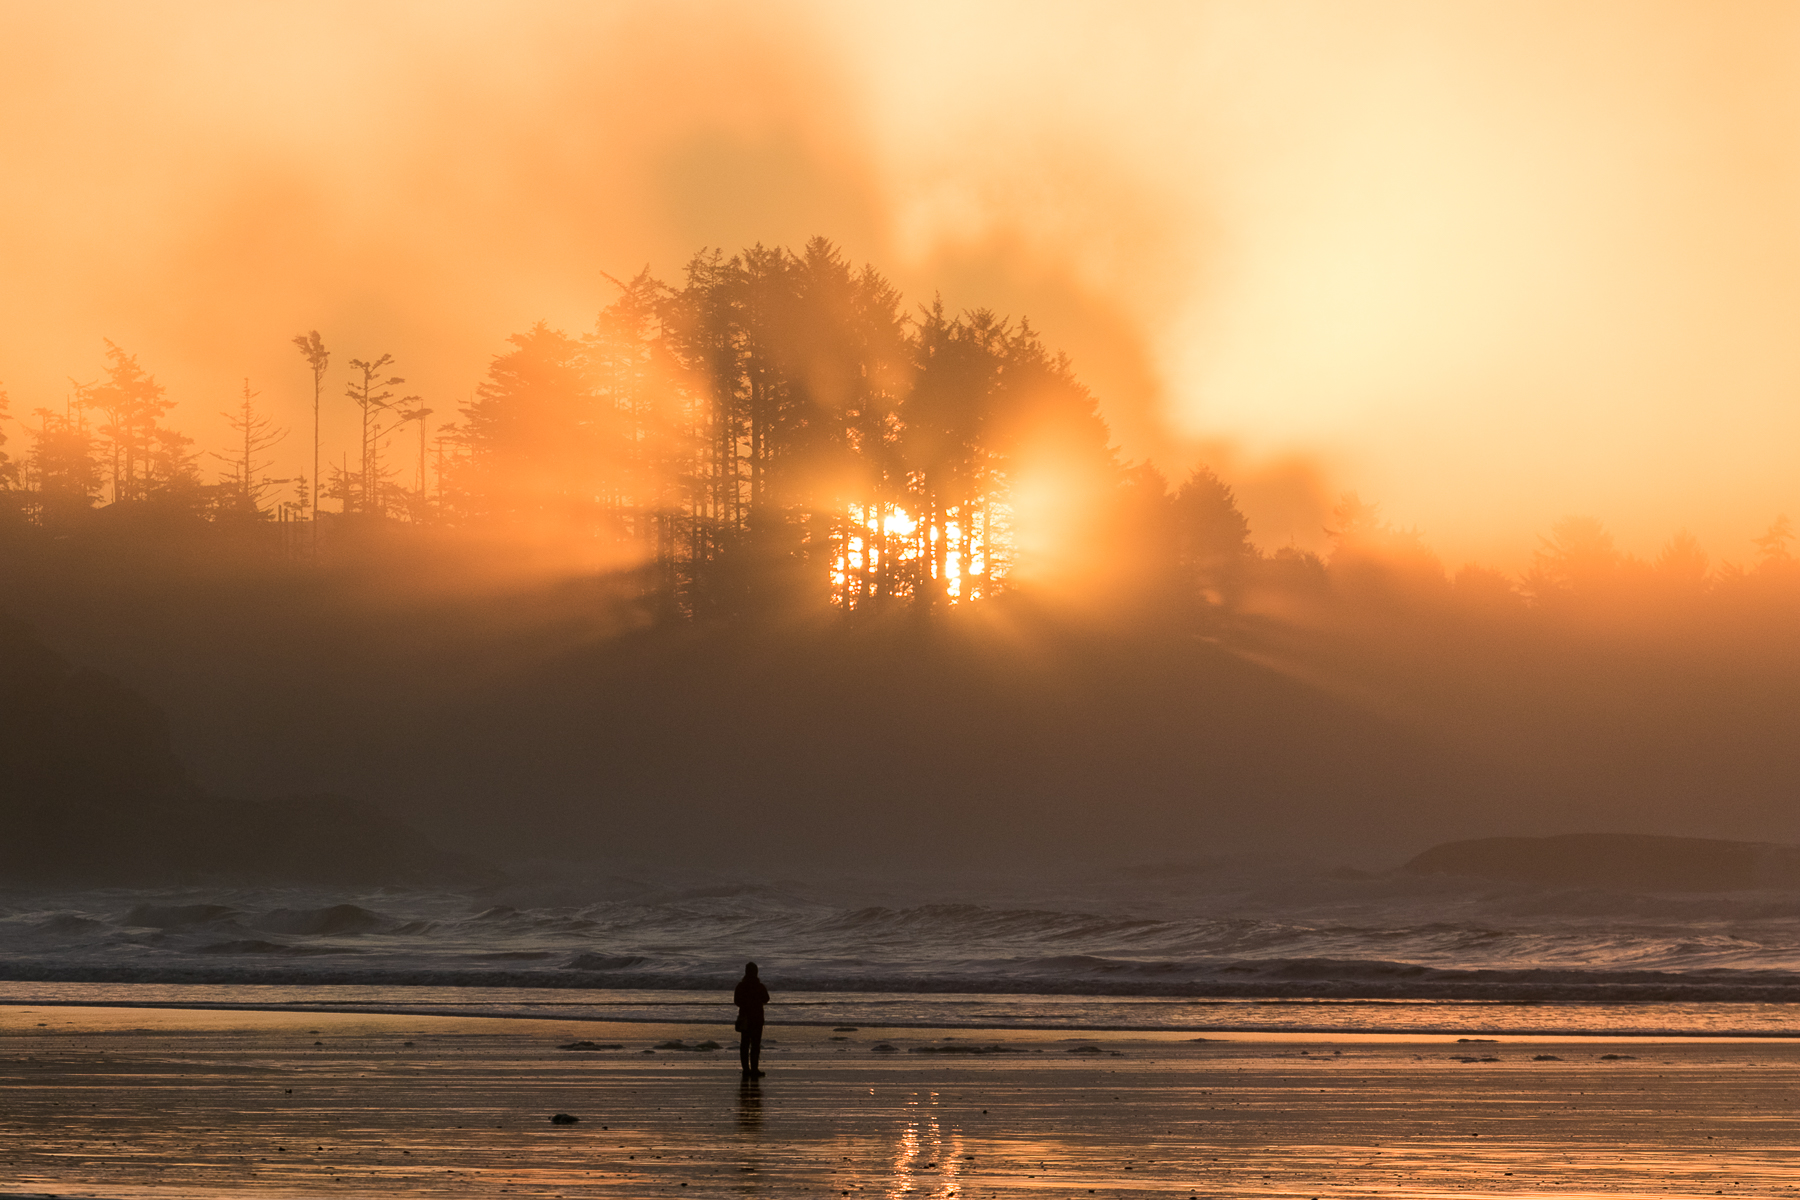 tofino_surf_photography-fog_mirage_sunrise.jpg